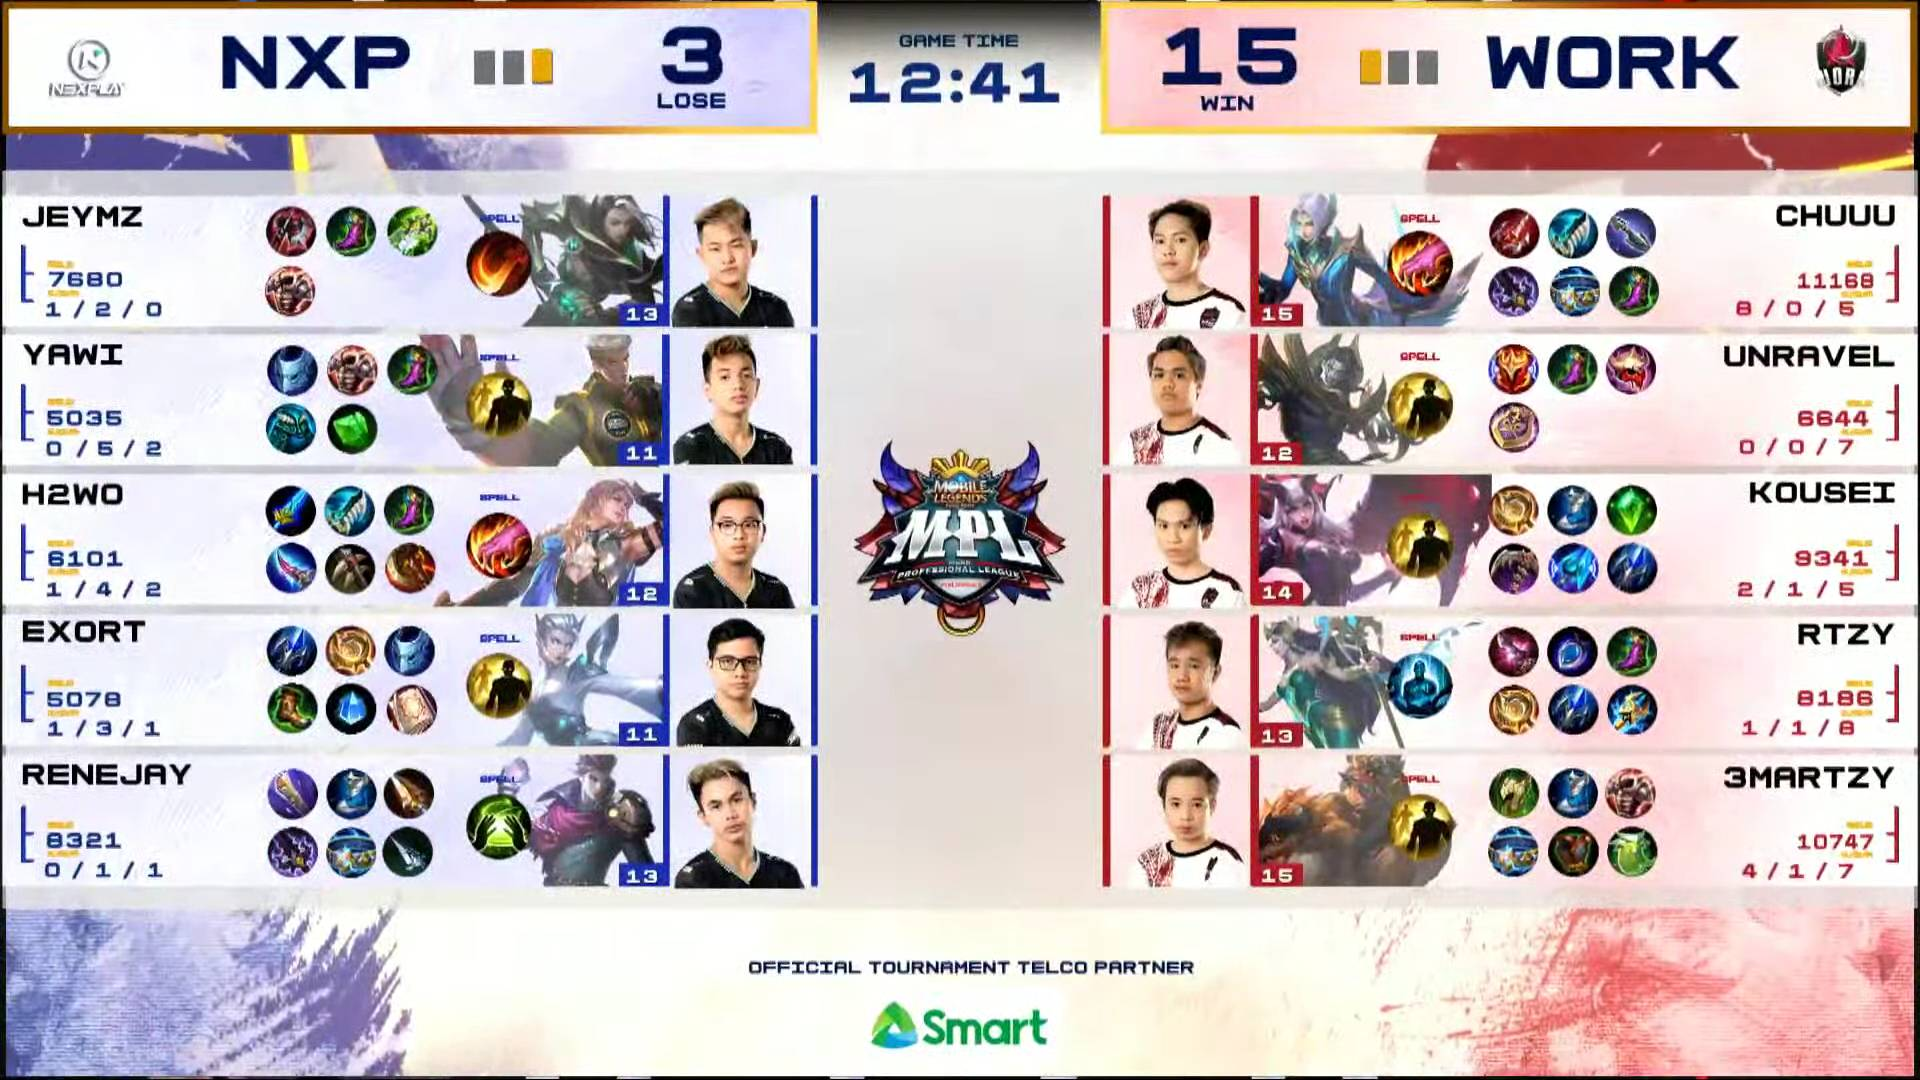 MPL-PH-7-Work-Auster-def-NXP-Game-2 Kousei's Esmeralda takes charge in clincher as Work Auster boots out Nexplay in MPL ESports Mobile Legends MPL-PH News  - philippine sports news